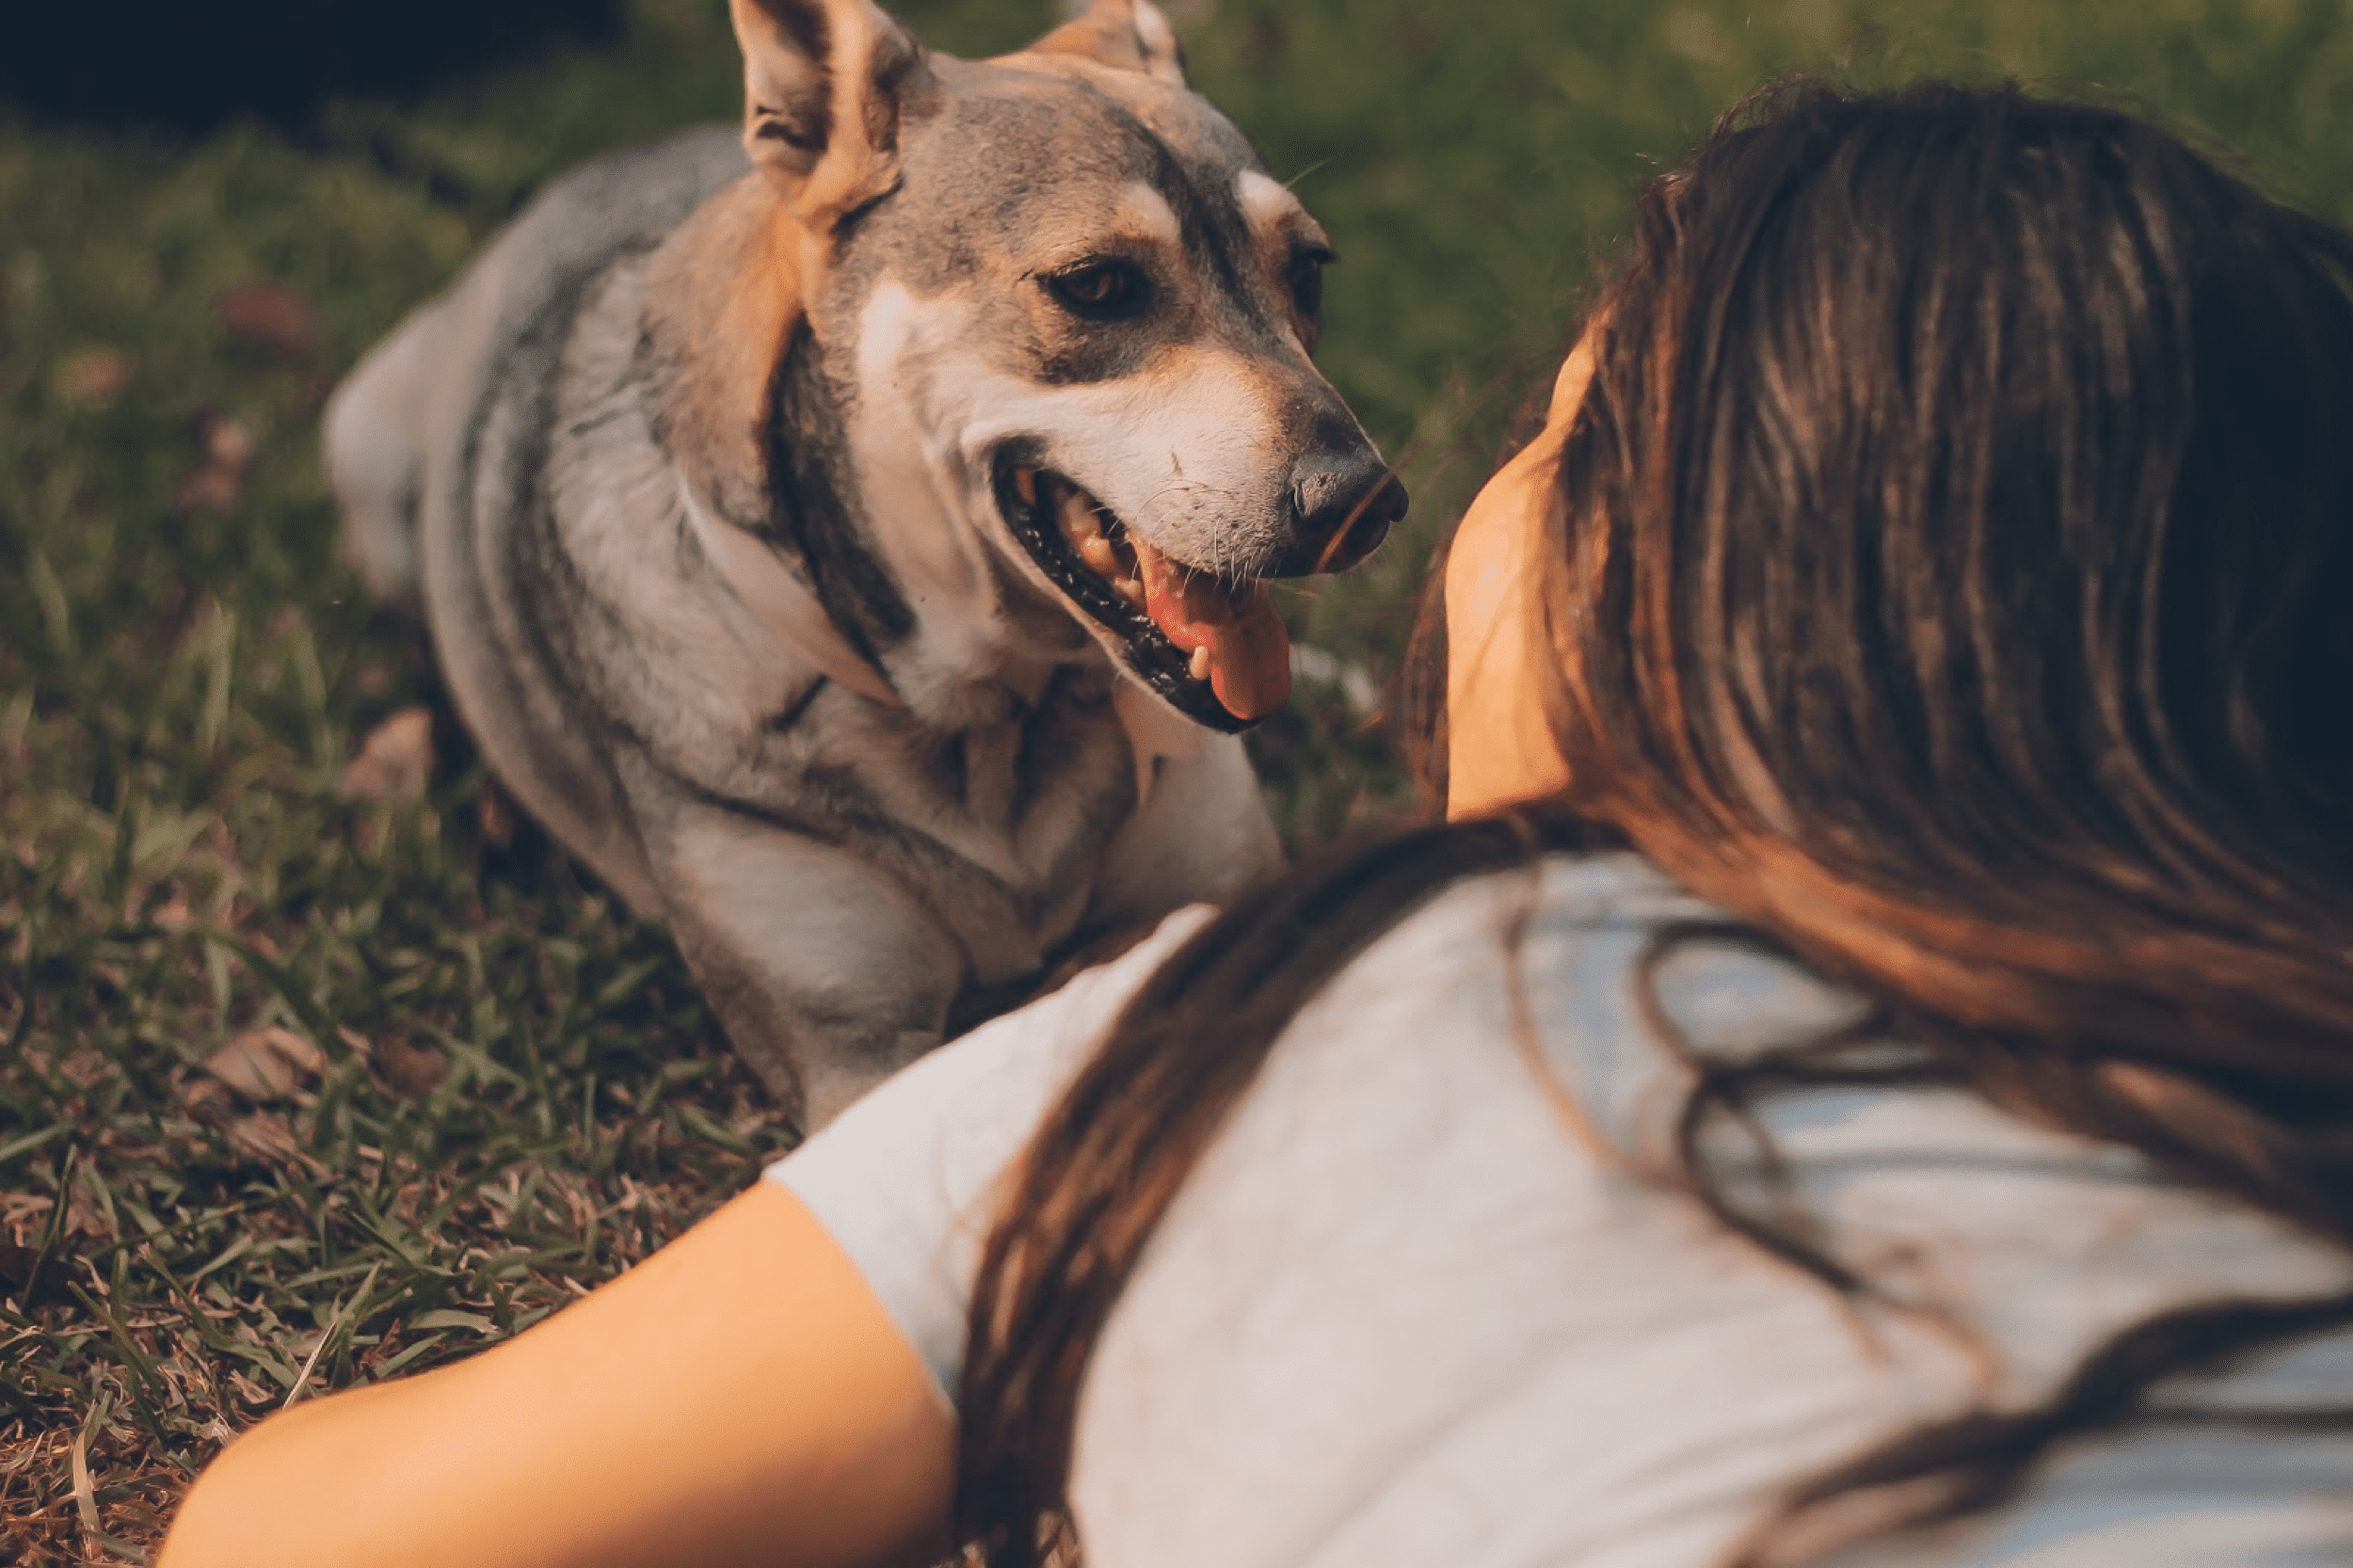 spend time with your furry friend at one of tanyard shores' pet-friendly amenities